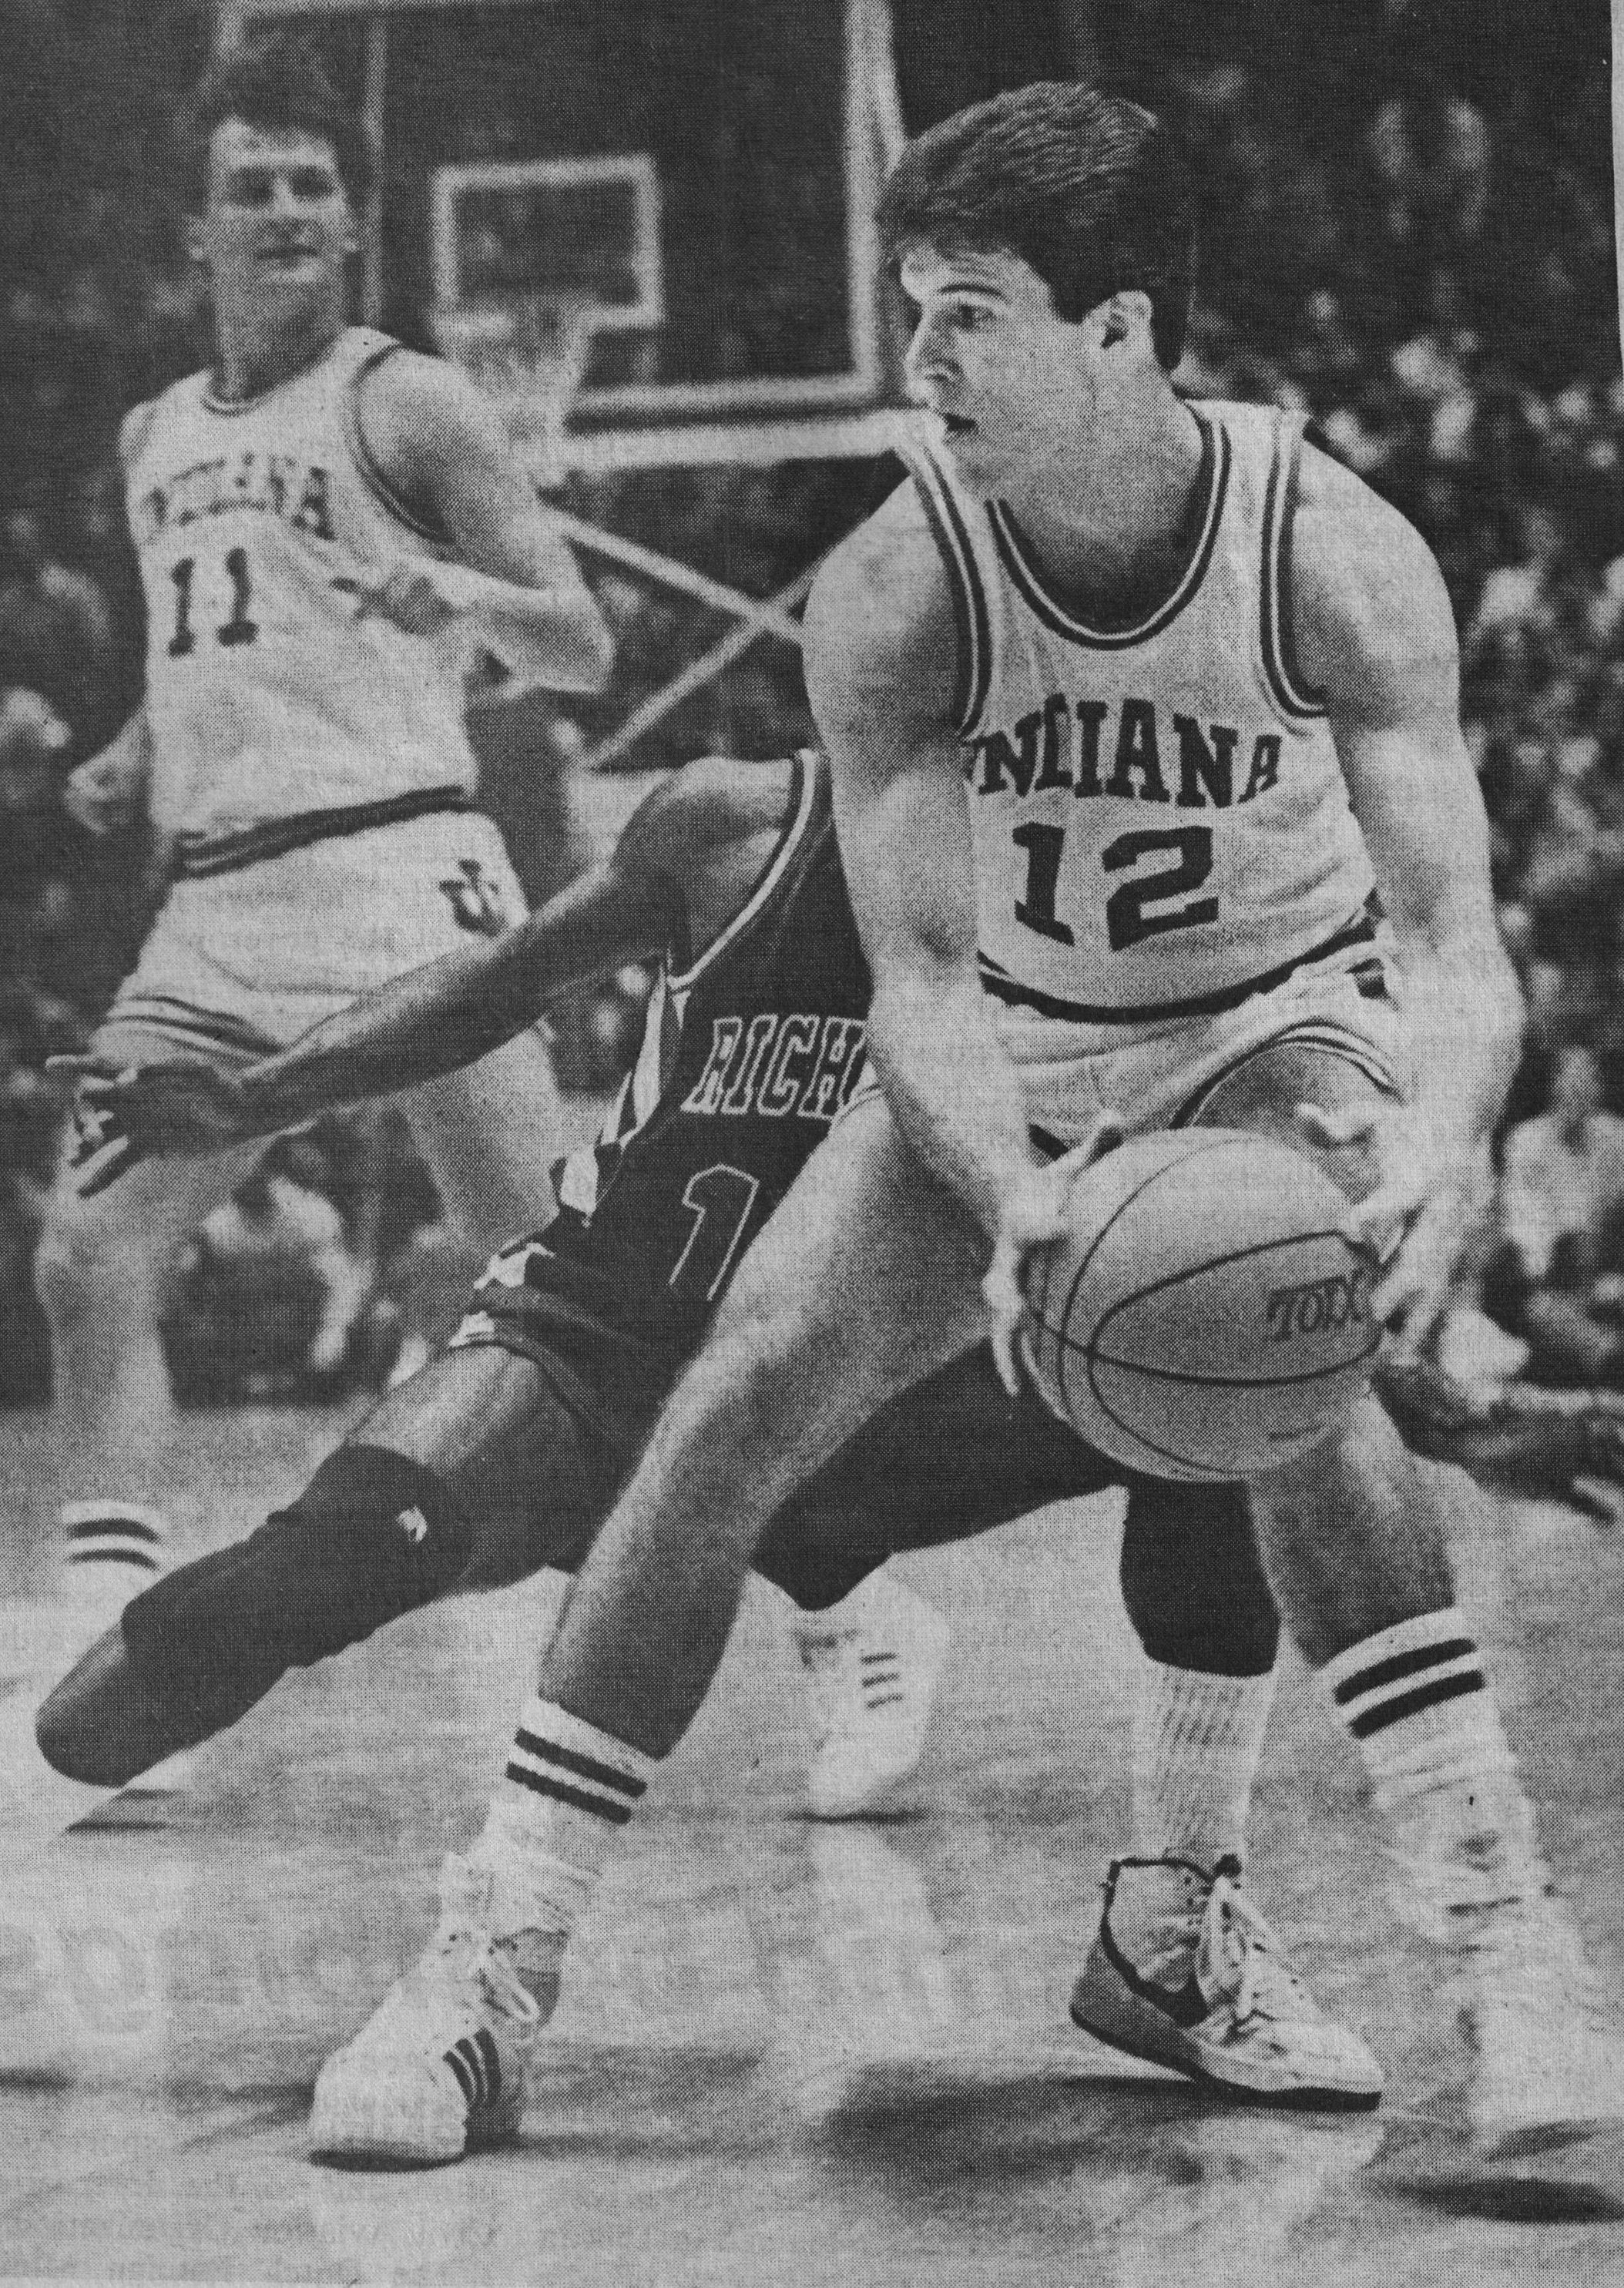 Pin On Steve Alford Indiana White